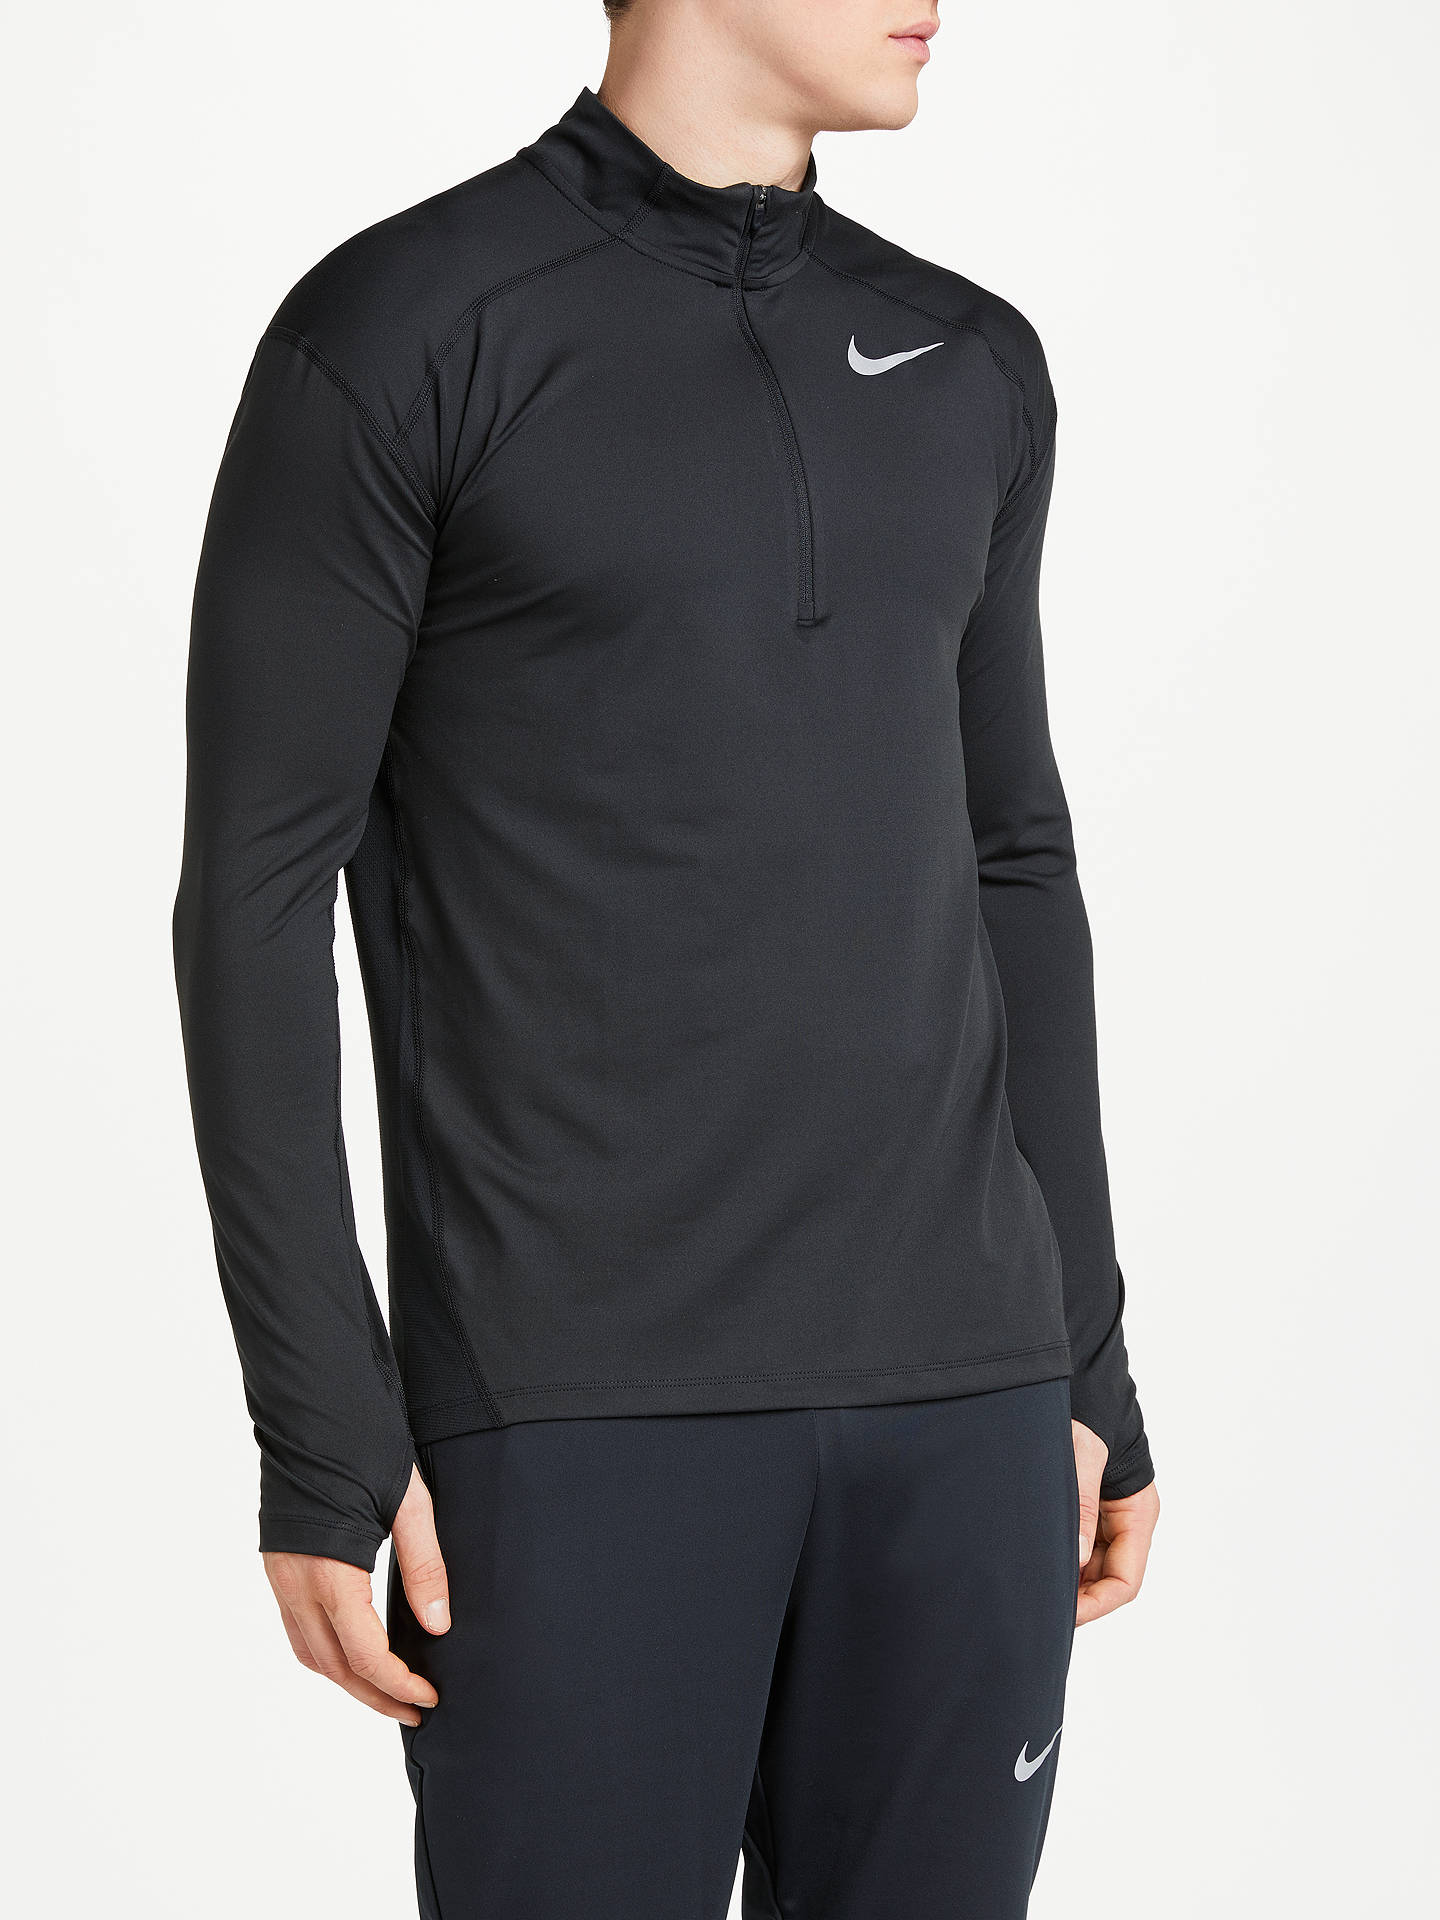 big sale f979a 80c9d Buy Nike Dry Element Long Sleeve 1 2 Zip Running Top, Black, S ...